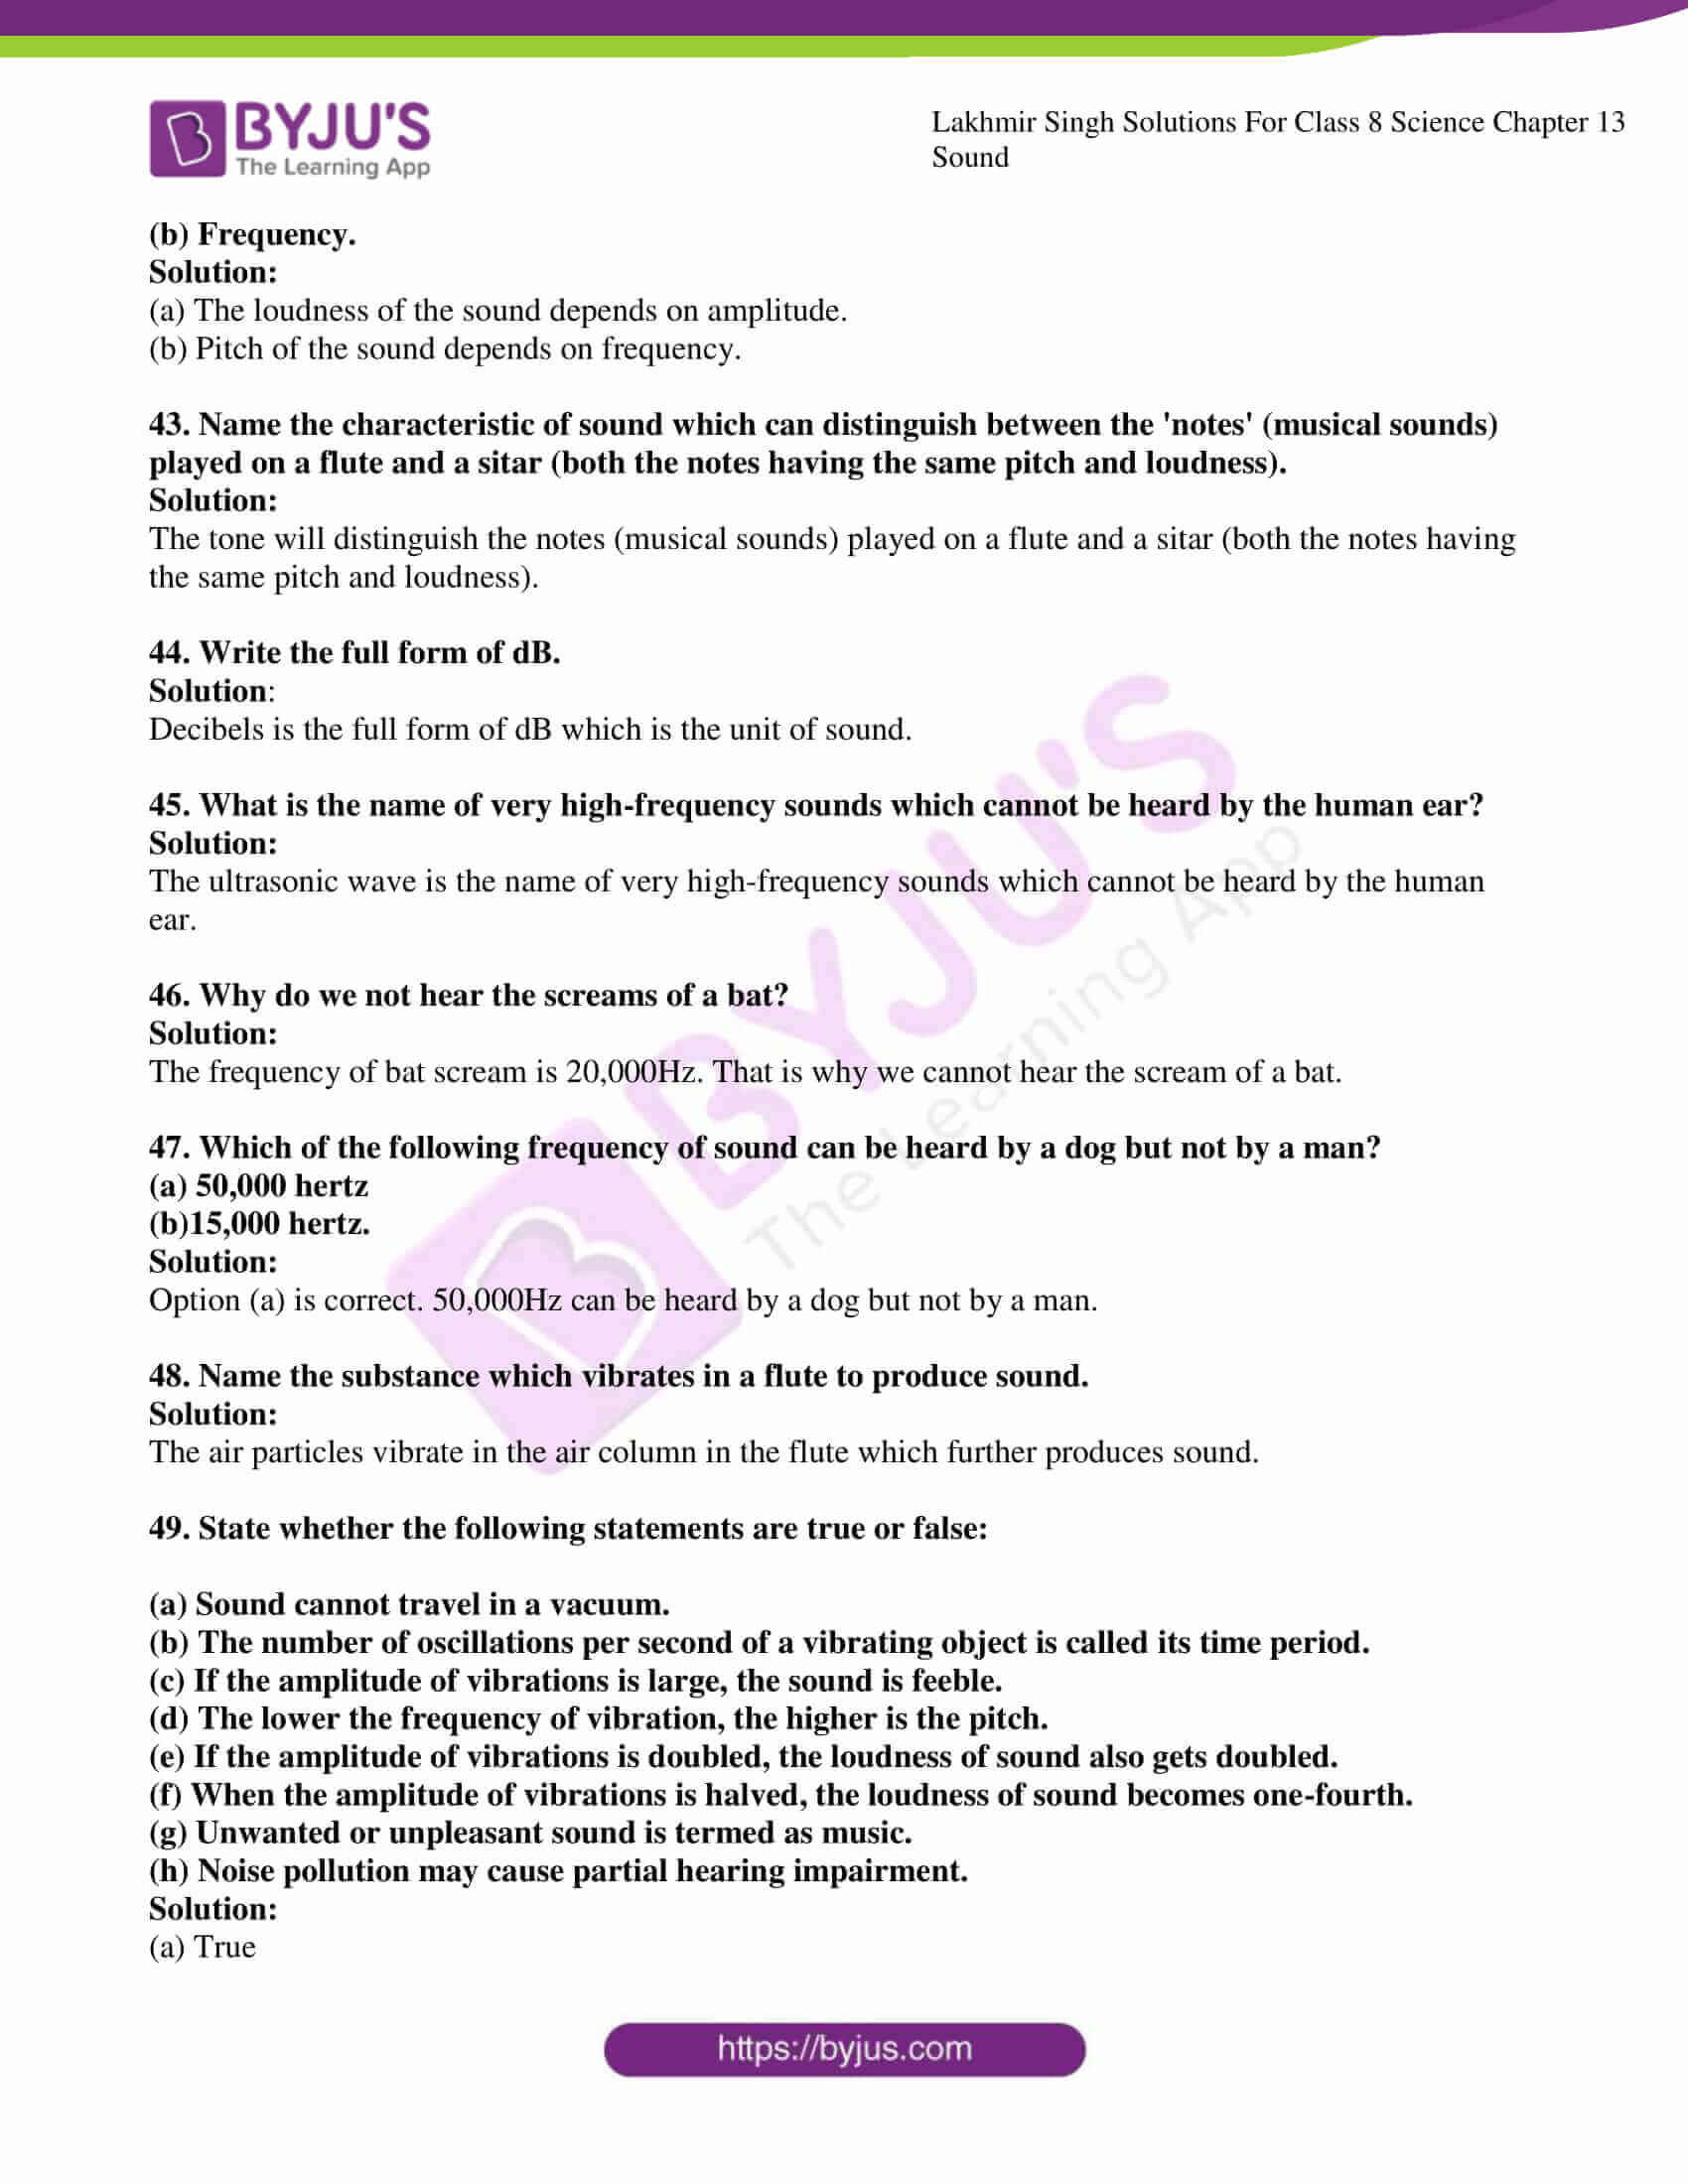 lakhmir singh solutions for class 8 science chapter 13 6